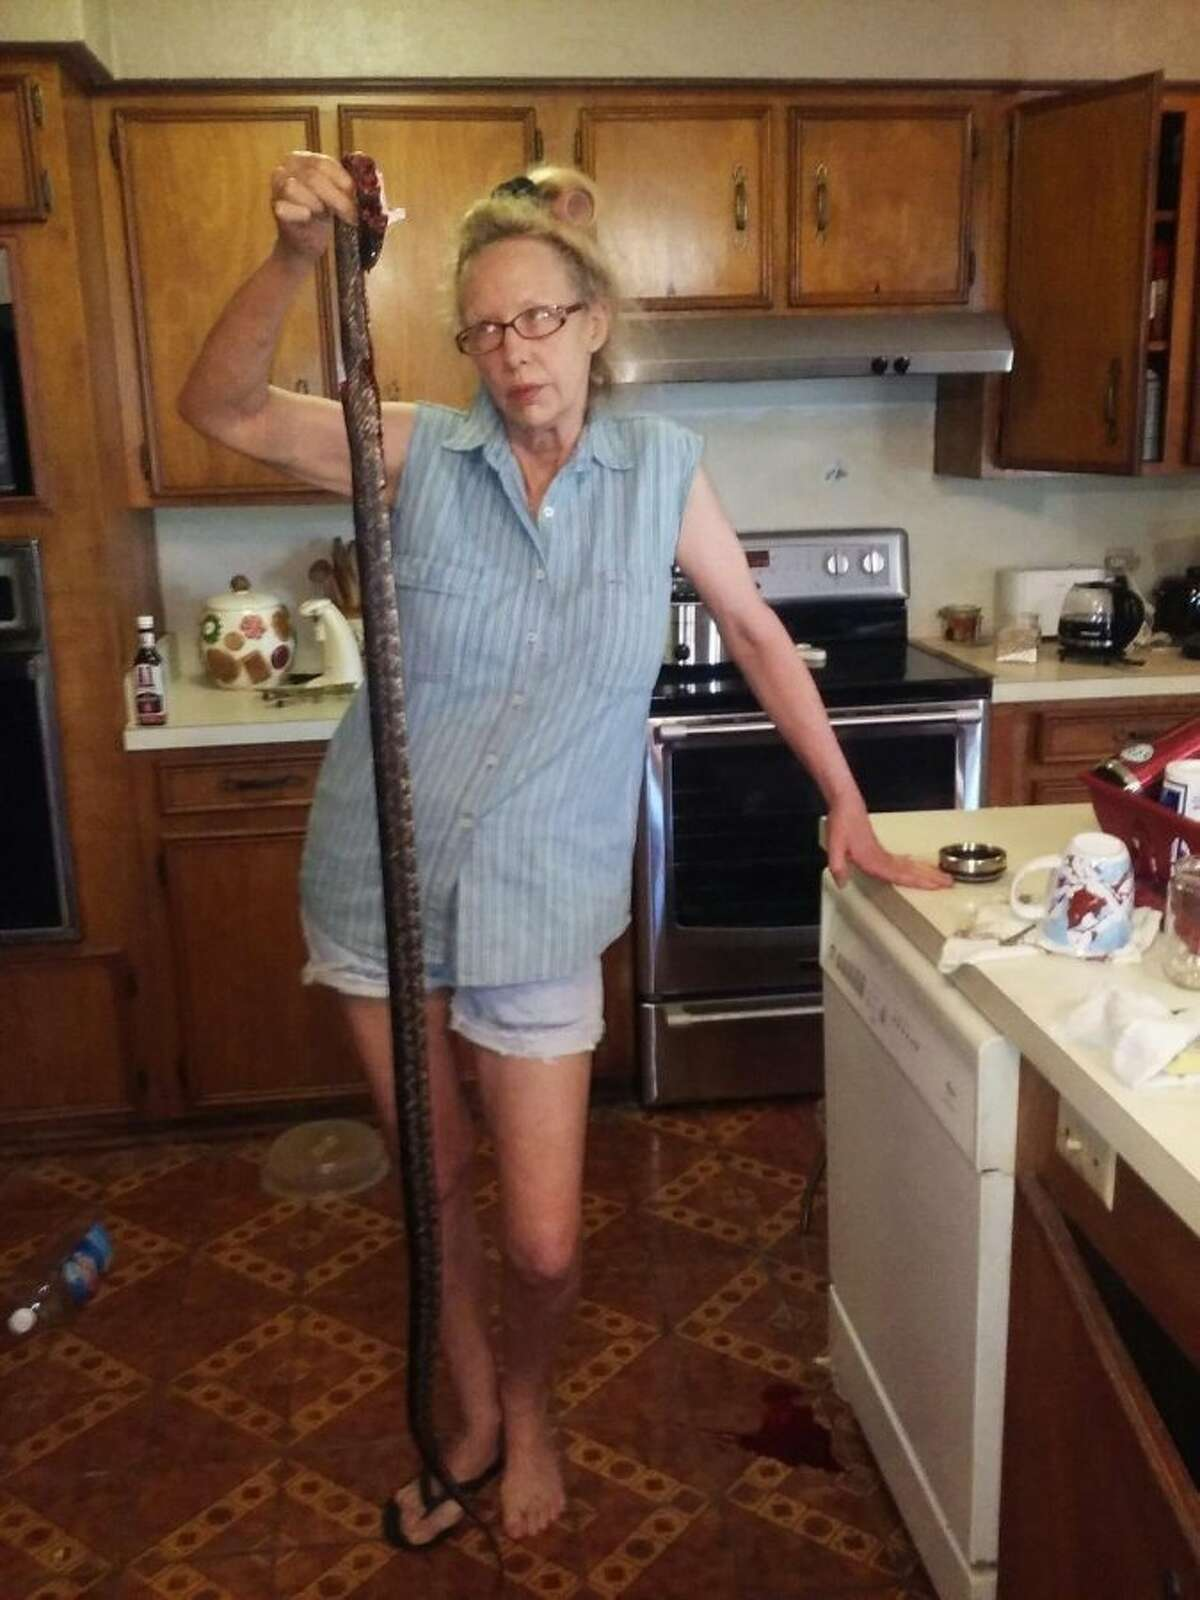 Deborah Burdette, from Willbarder County, and one of the snakes she found in her kitchen and killed.